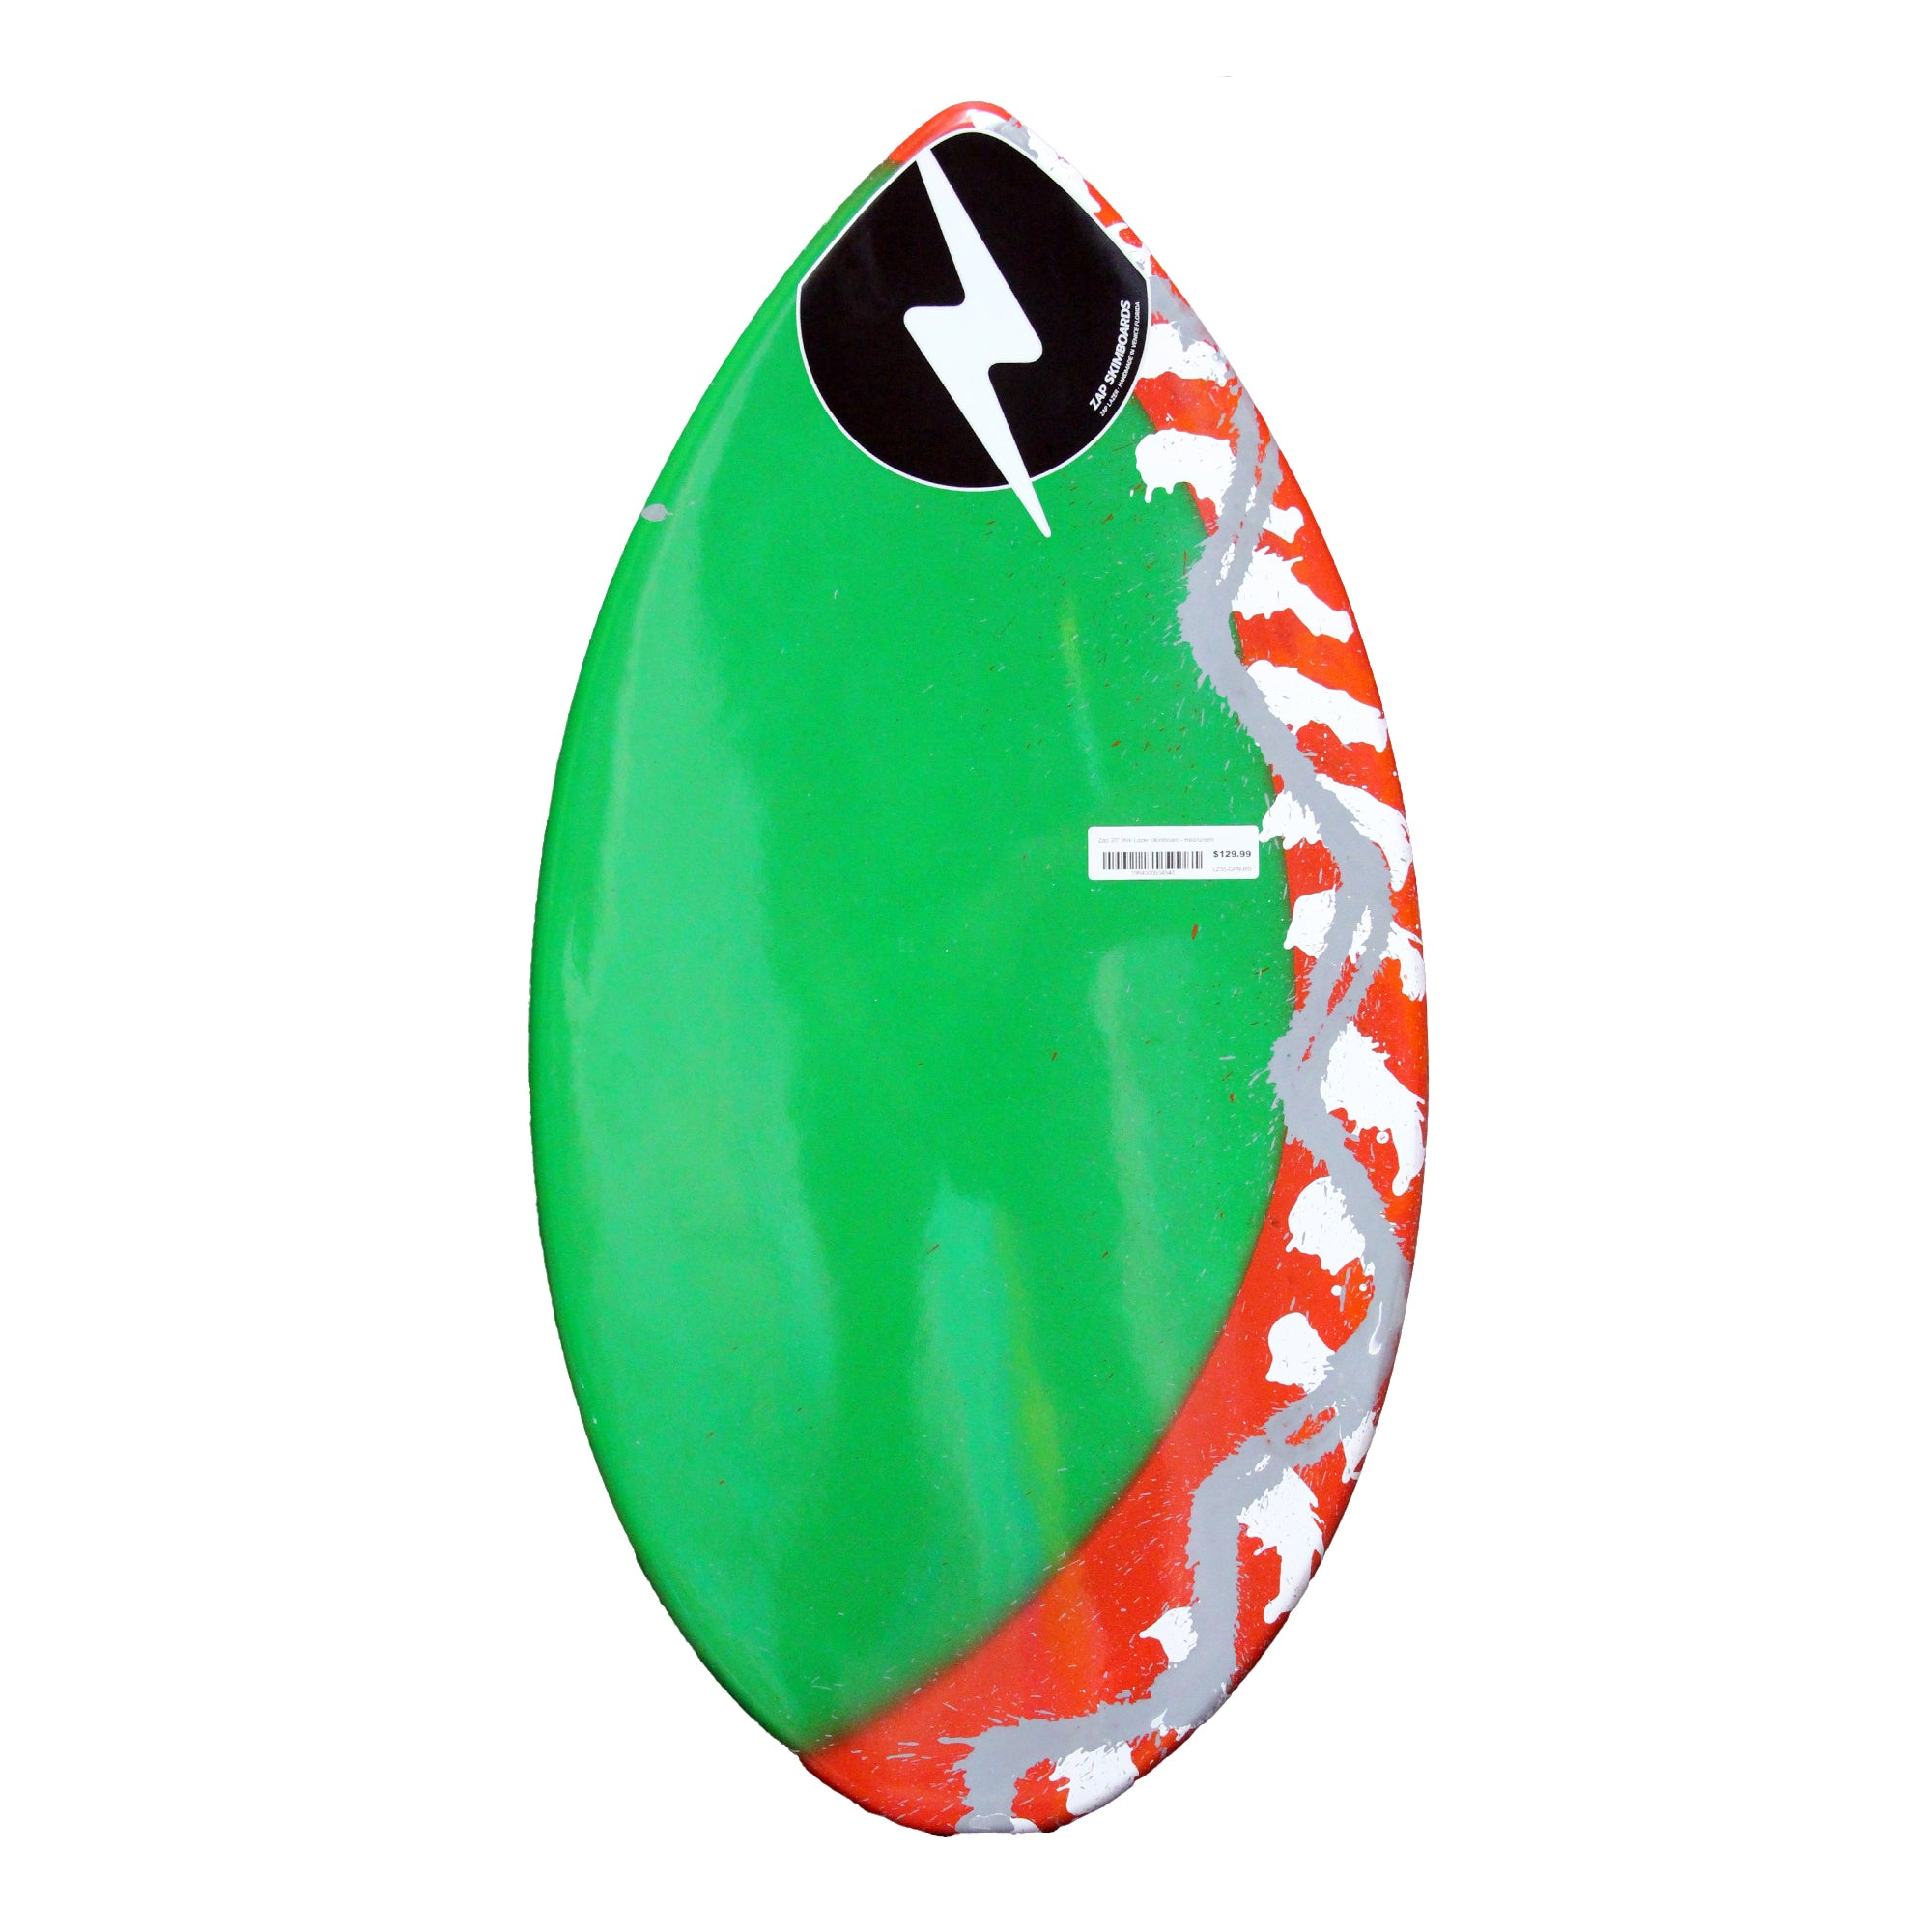 "Zap 35"" Mini Lazer Skimboard - Red/Green"